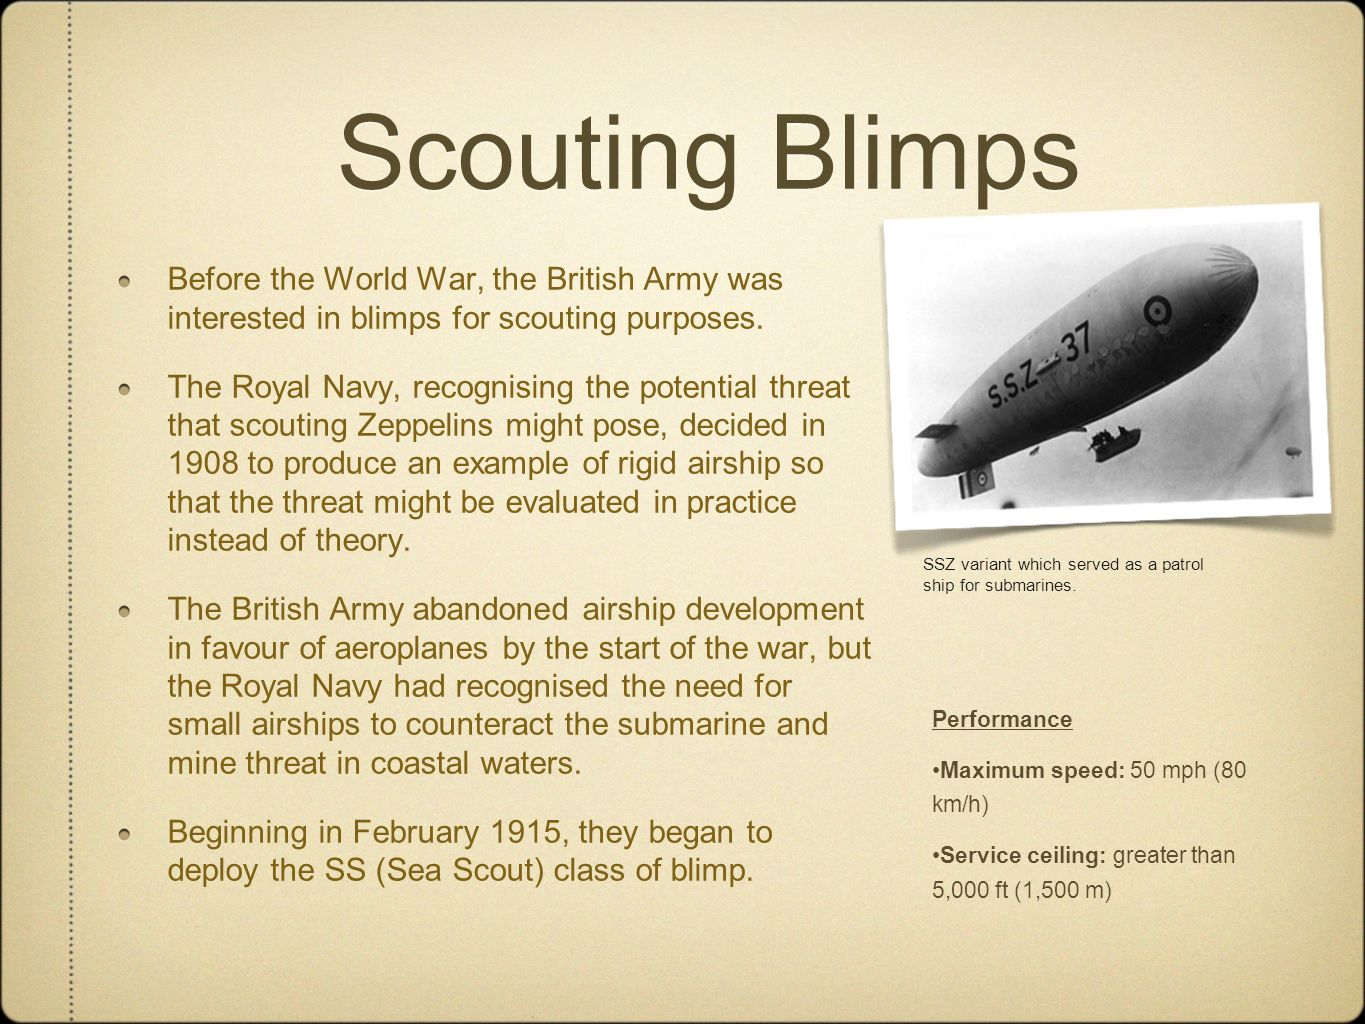 Scouting BlimpsBefore the World War, the British Army was interested in blimps for scouting purposes.